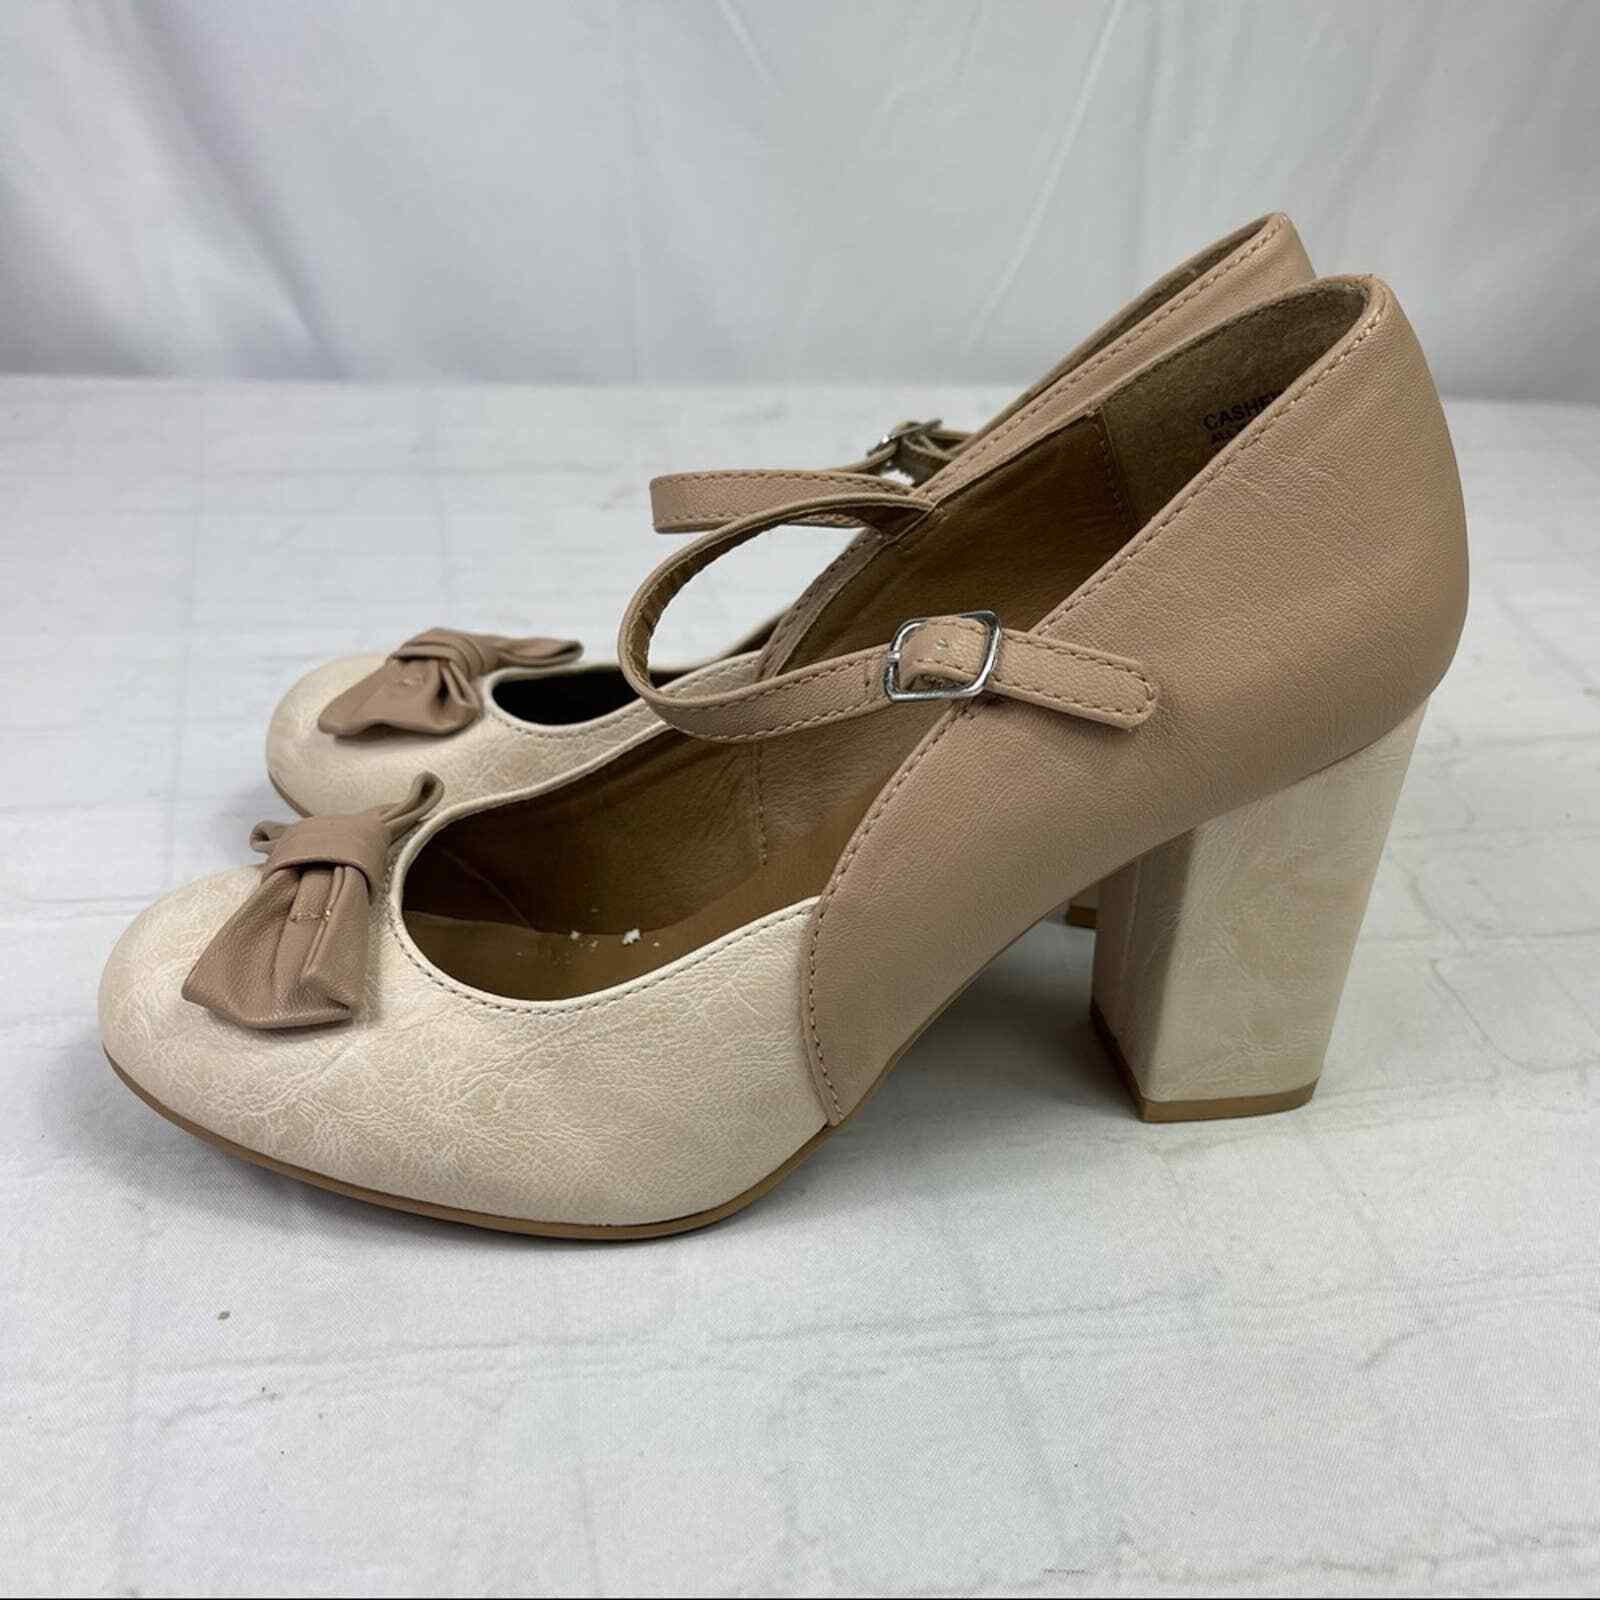 Jelly pop nude bow Mary Jane pumps - image 2